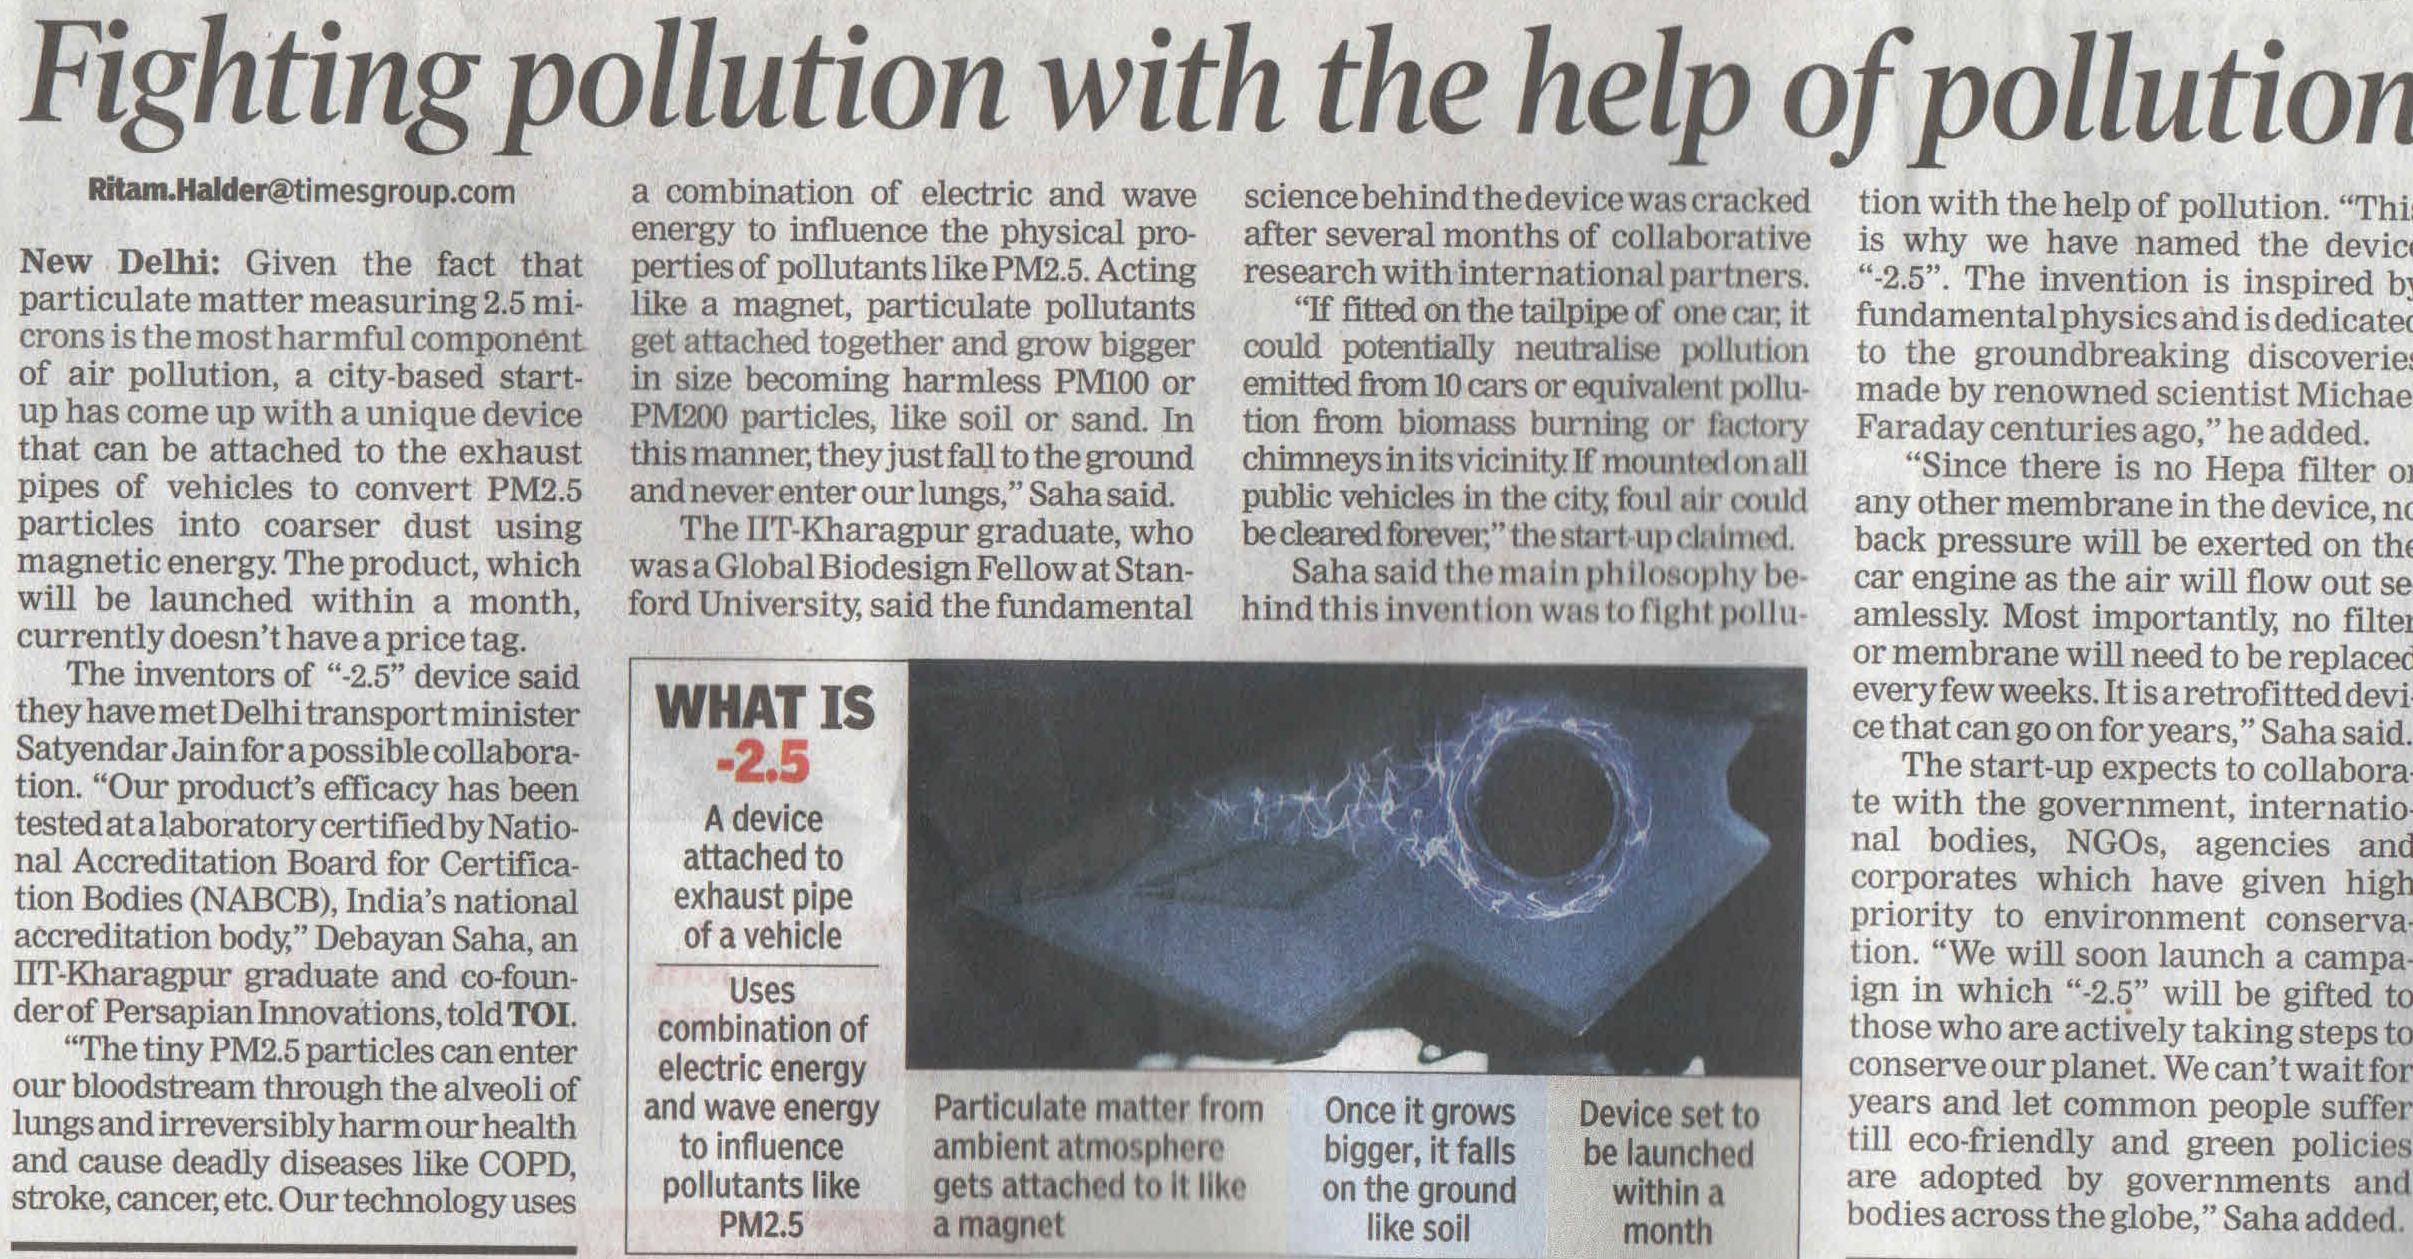 Fighting pollution with the help of pollution